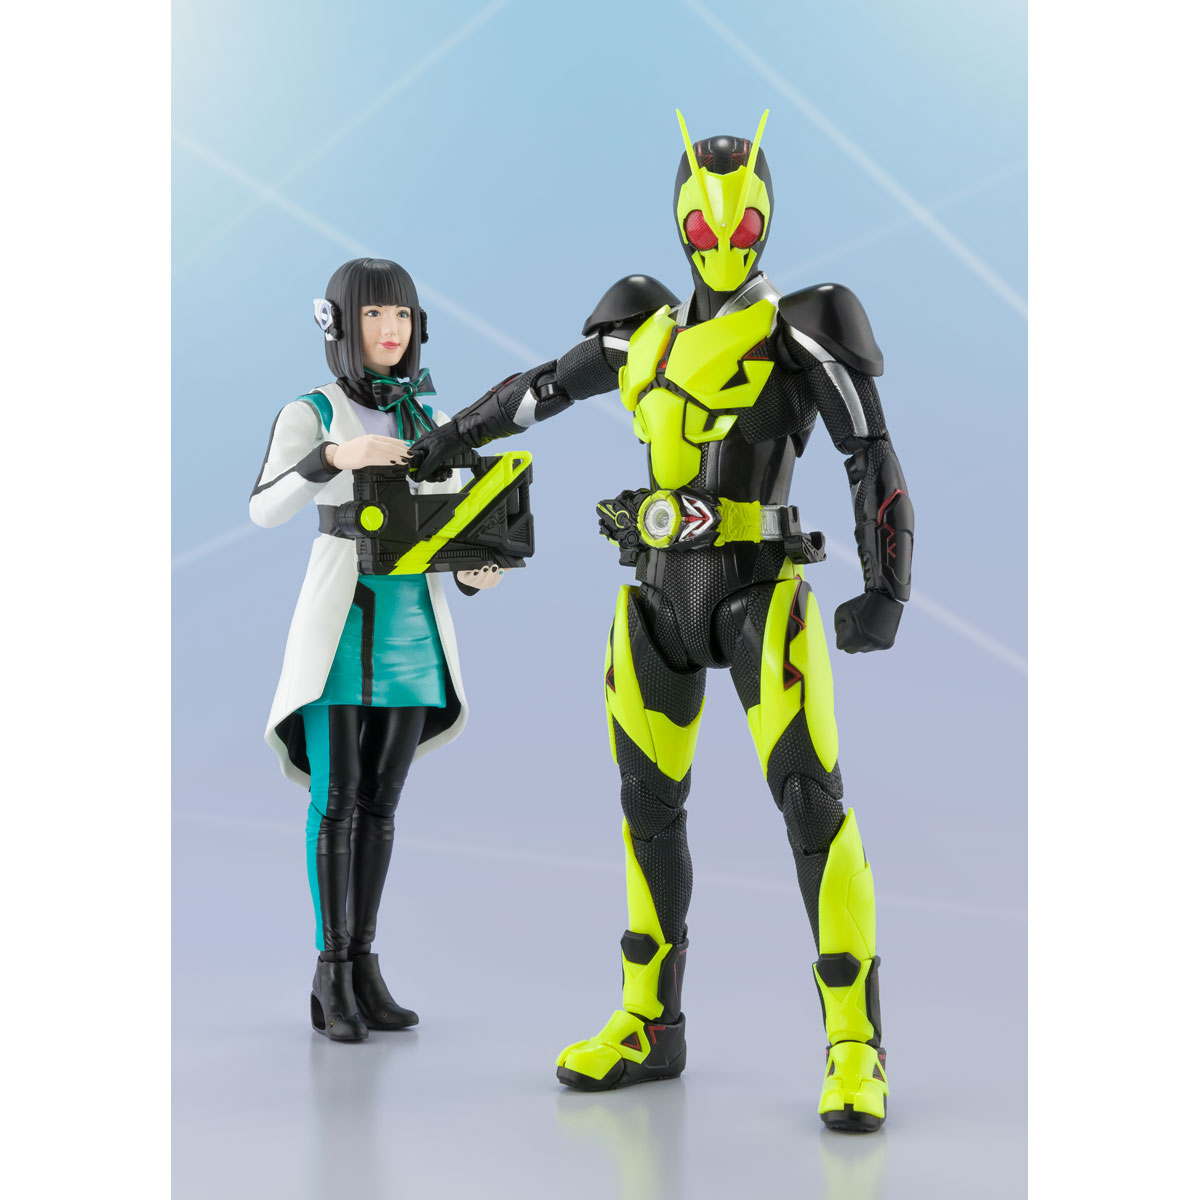 S.H.Figuarts IS